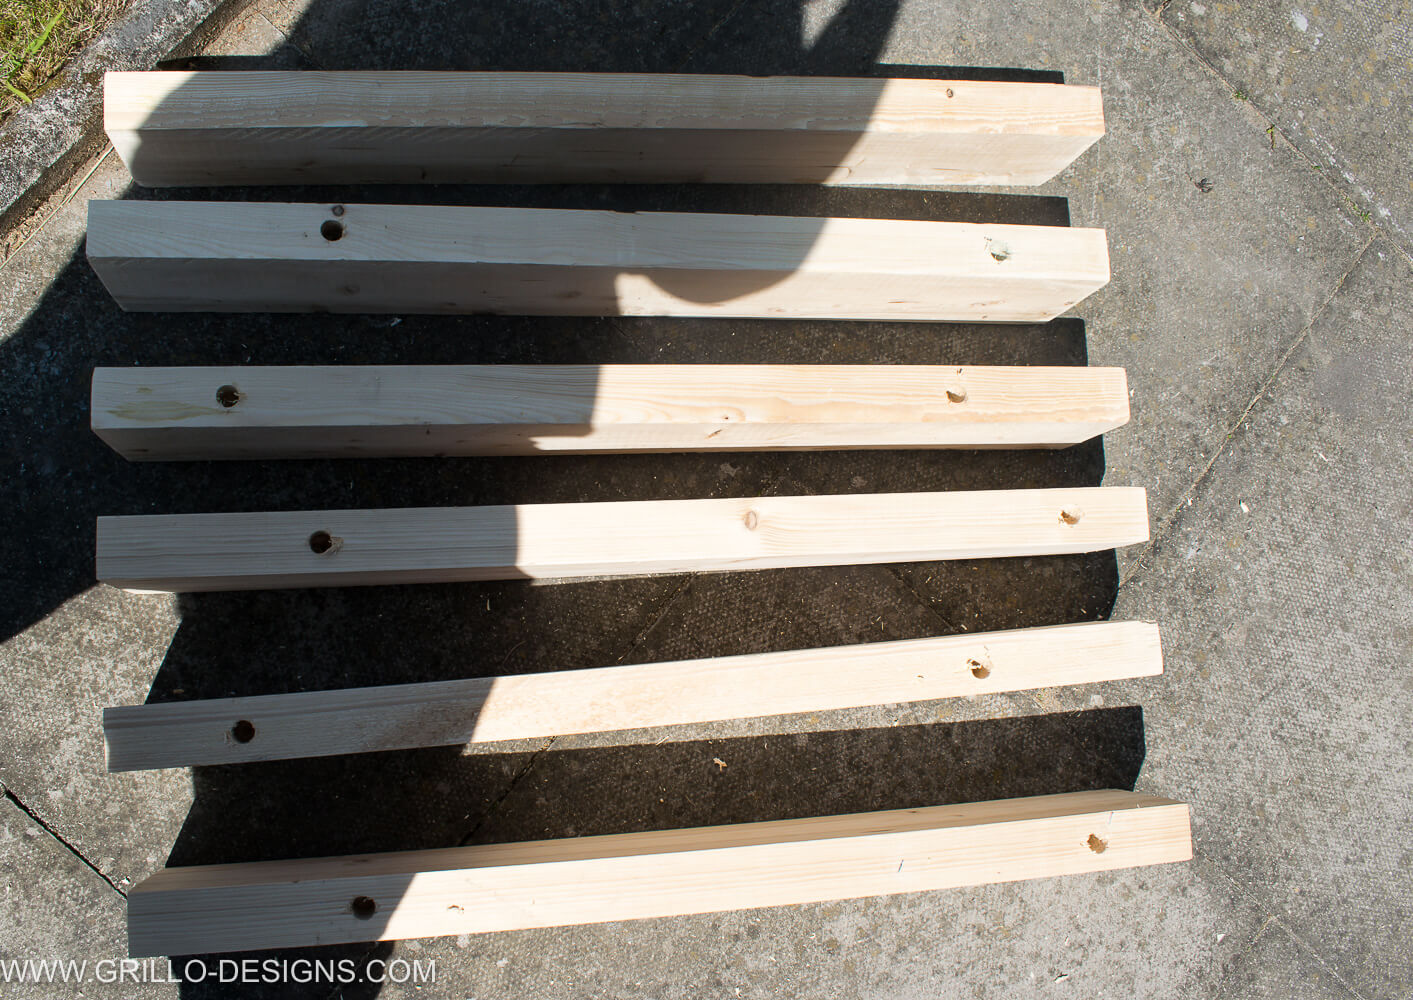 Wood with pre-drilled holes to make this rustic outdoor sofa / grillo designs